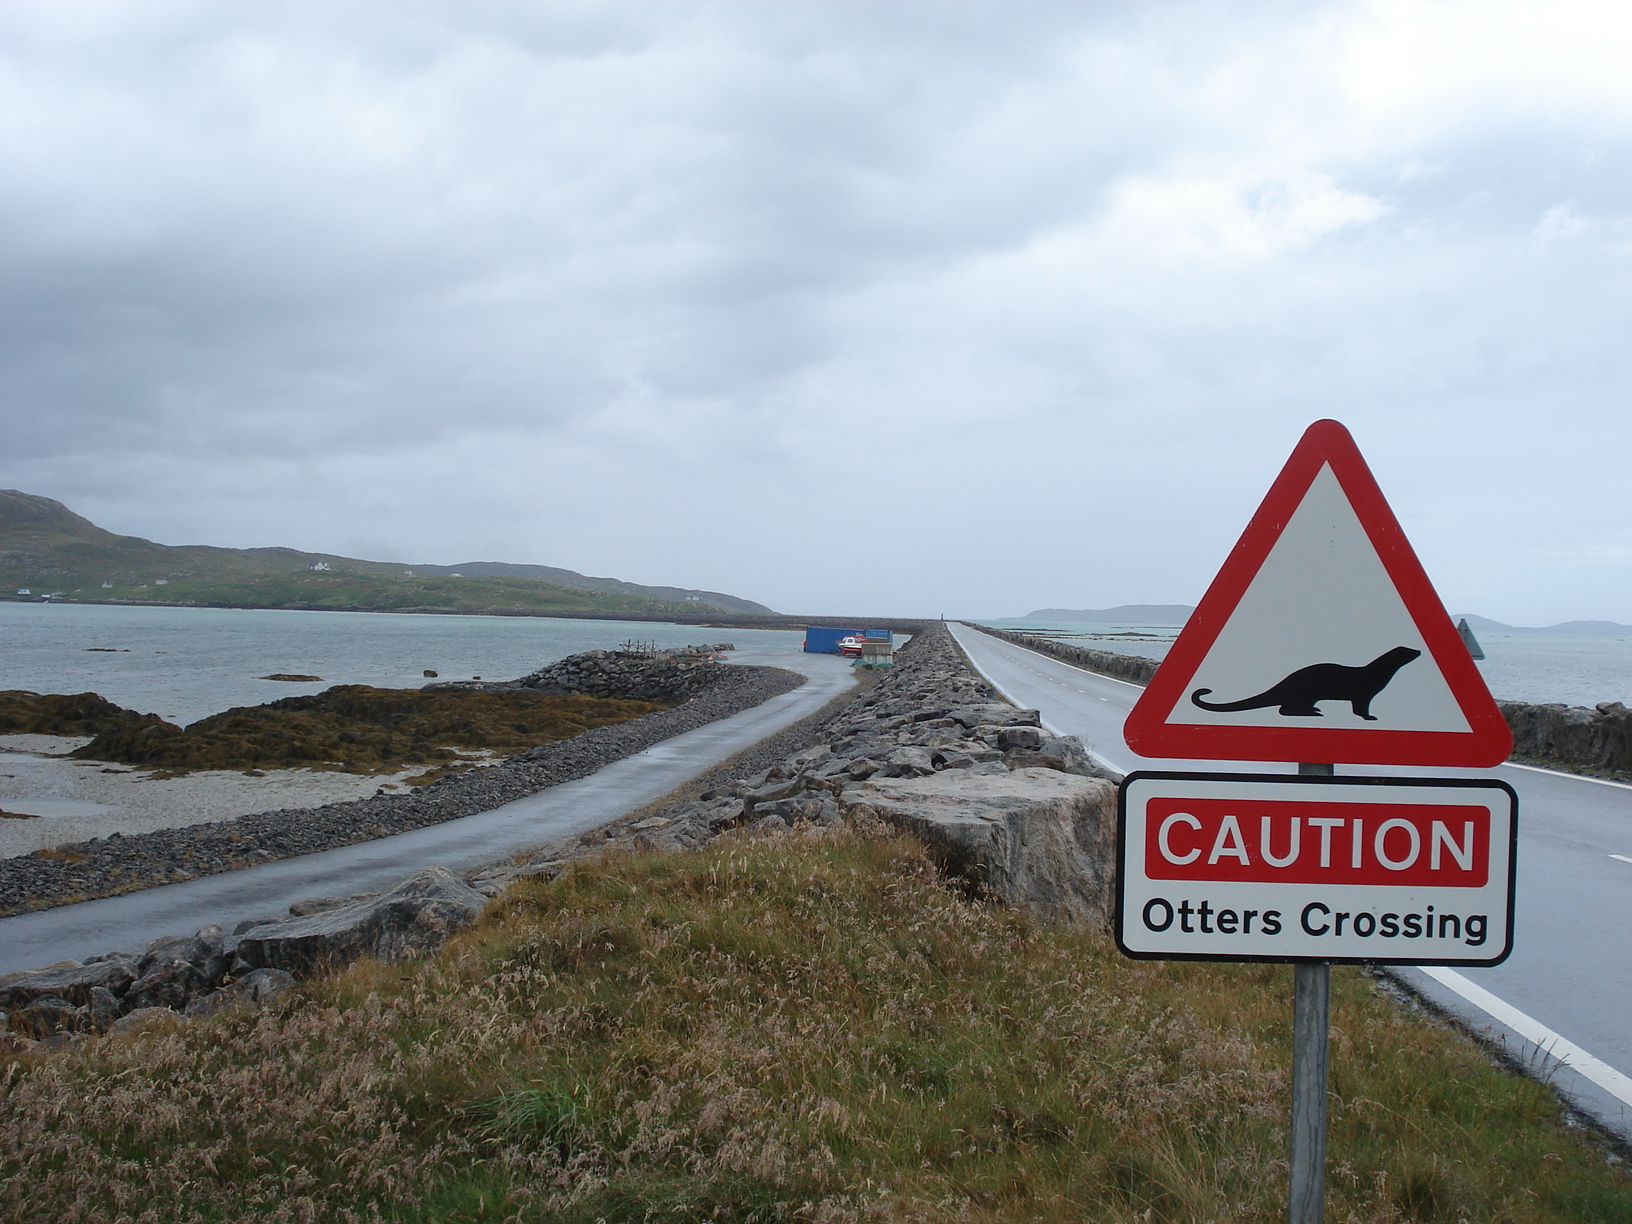 I didn't see any otters. They must have crossed already